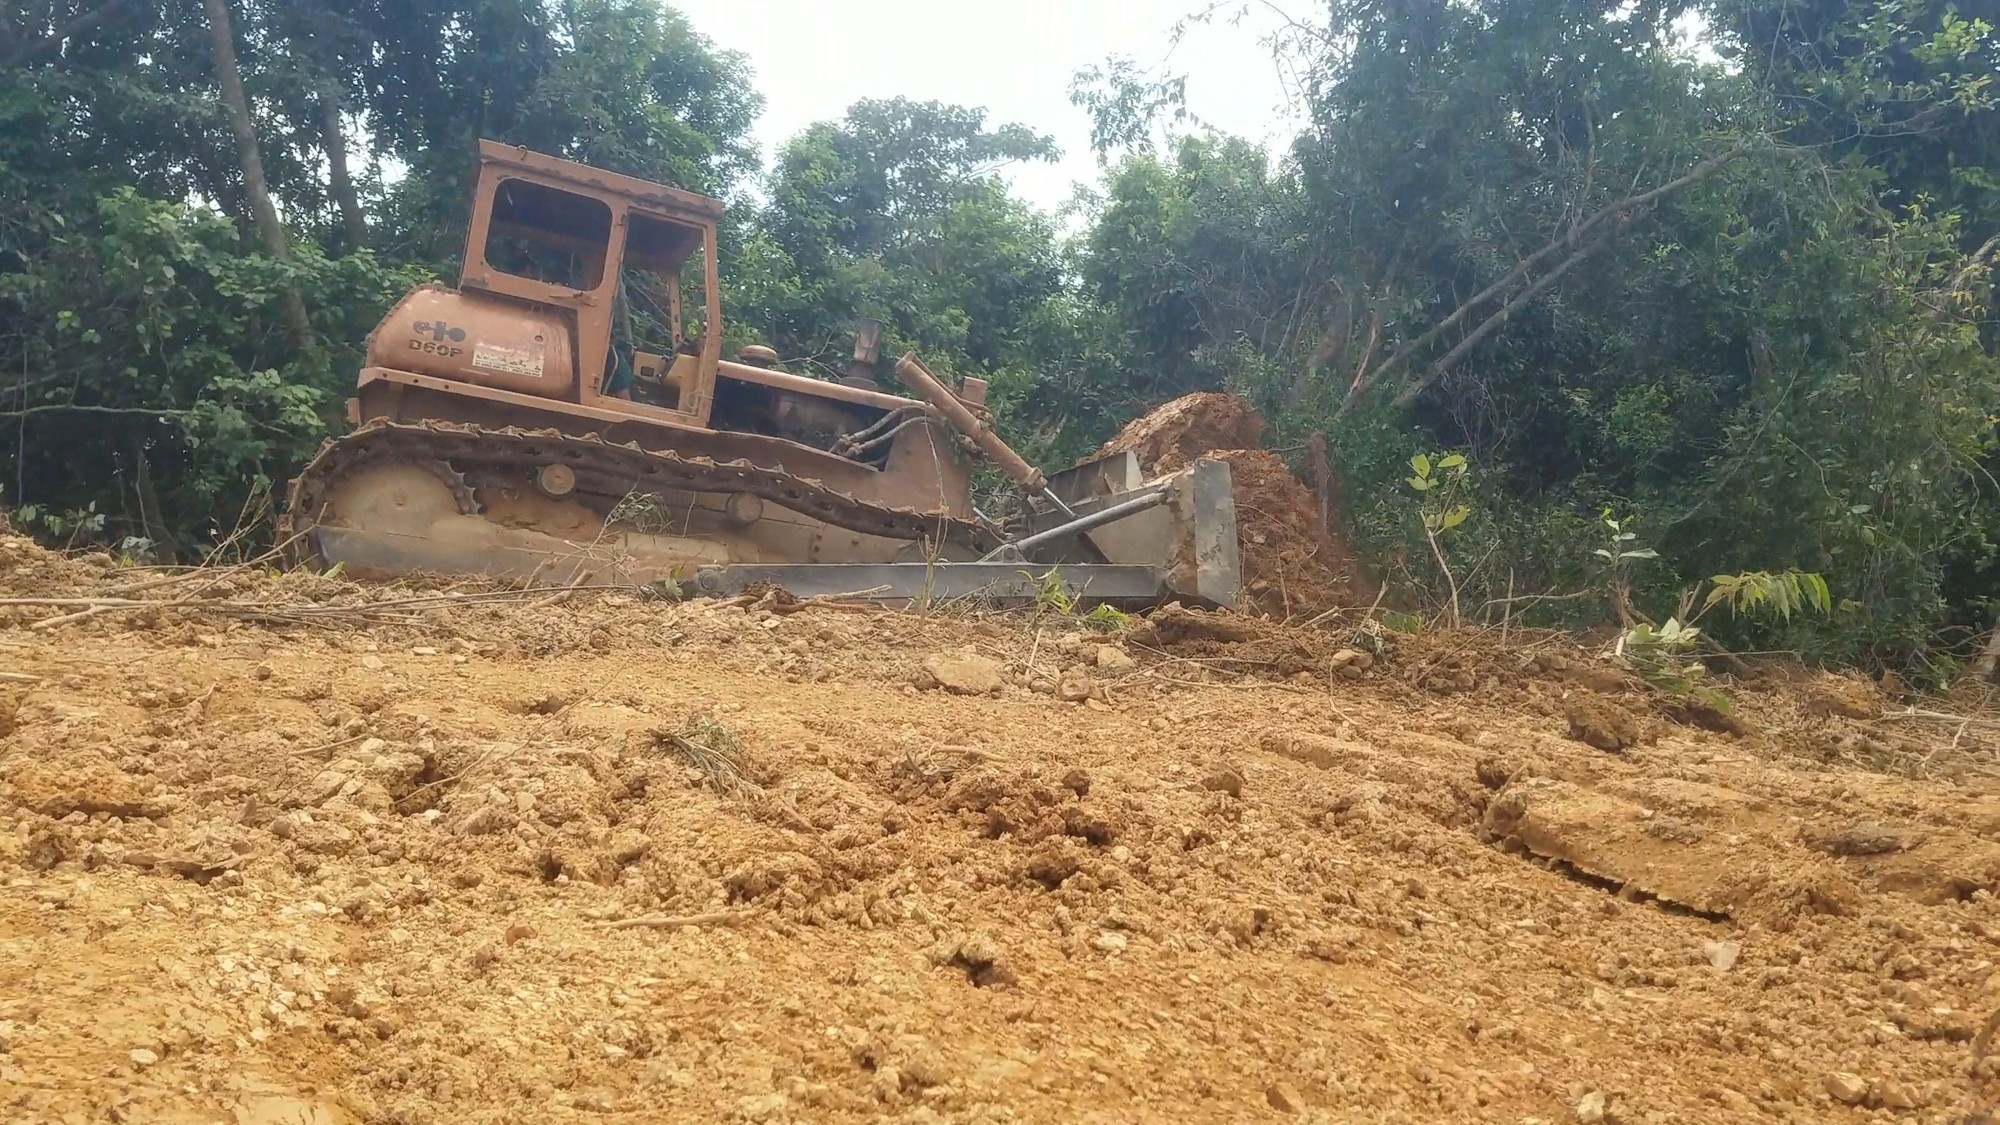 Excavators used to destroy natural forest in north-central Vietnam